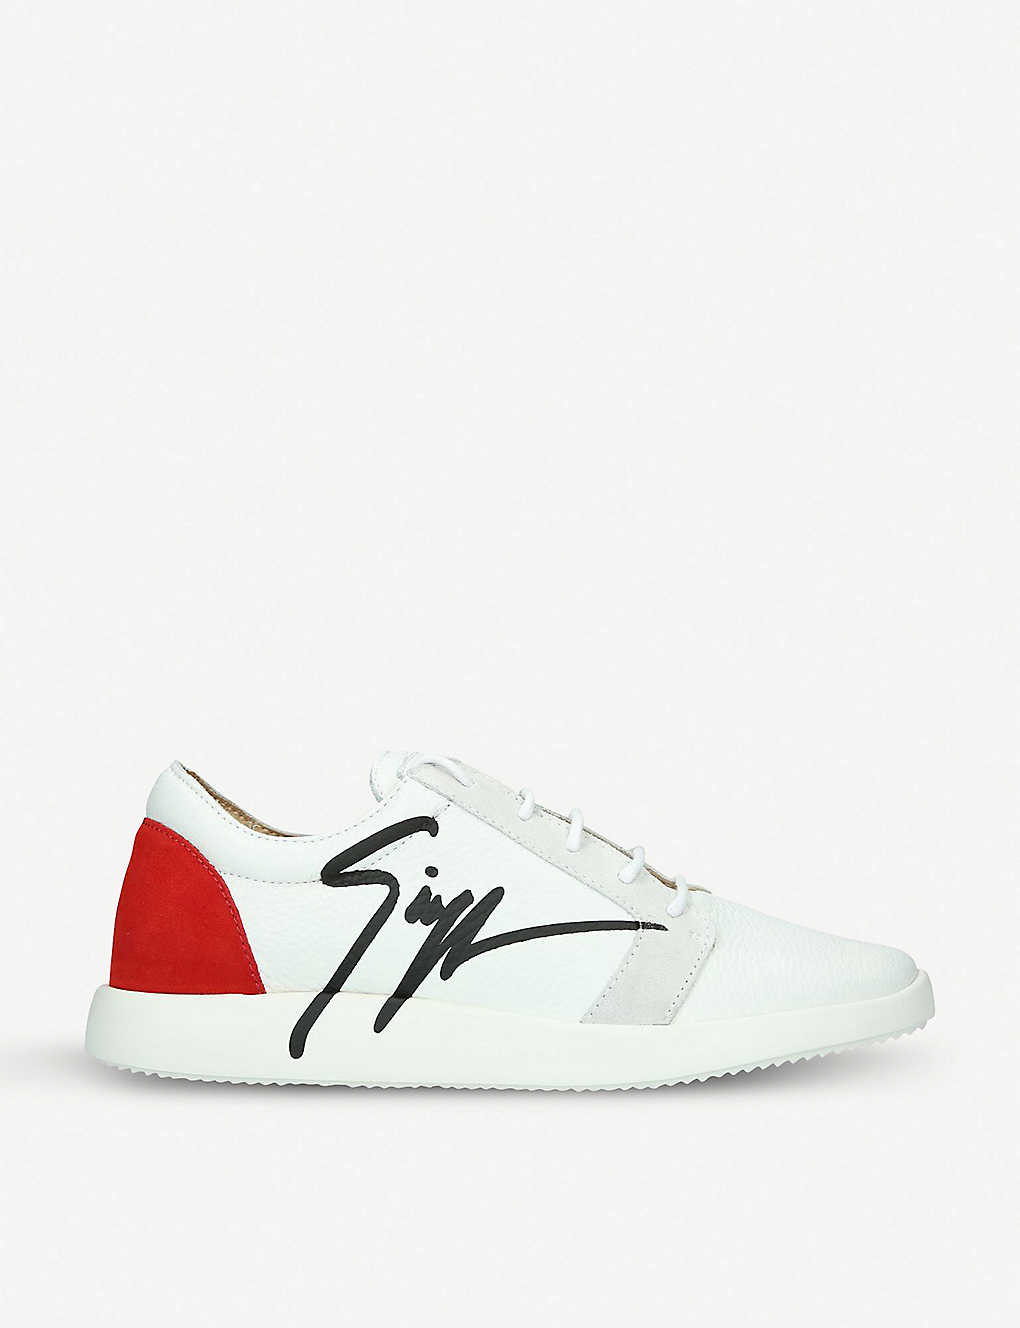 Giuseppe Zanotti G Runner leather and suede sneakers